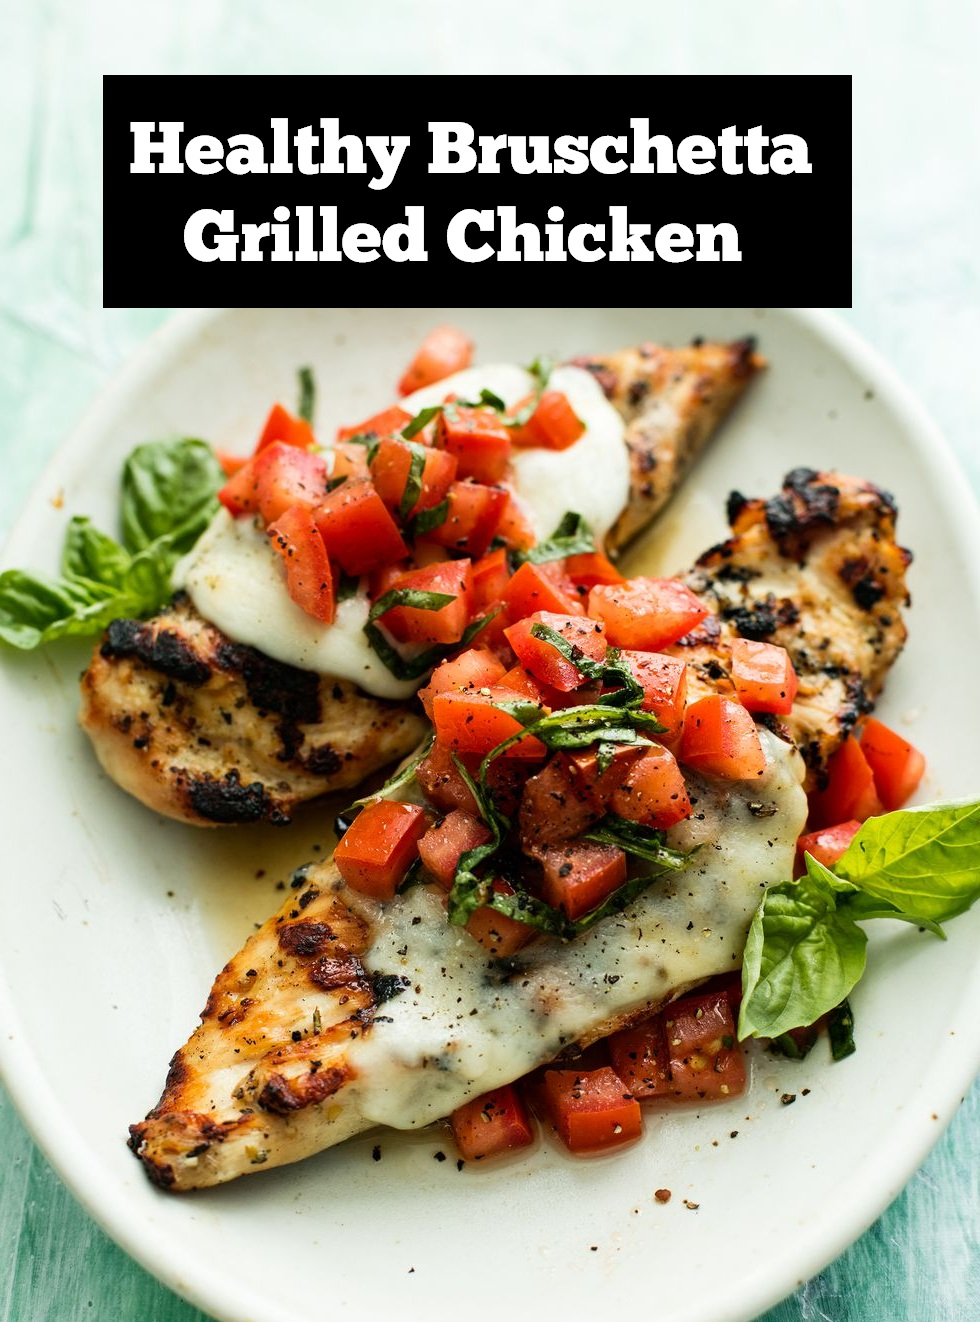 Healthy Bruschetta Grilled Chicken Recipe | Grilled Chicken Recipe | Healthy Grilled Chicken Recipe | Chicken Dinner Recipe | Healthy Dinner Recipe #healthyrecipe #healthydinnerrecipe #dinnerrecipe #dinner #healthydinner #chickenrecipe #chickendinner #healthychickenrecipe